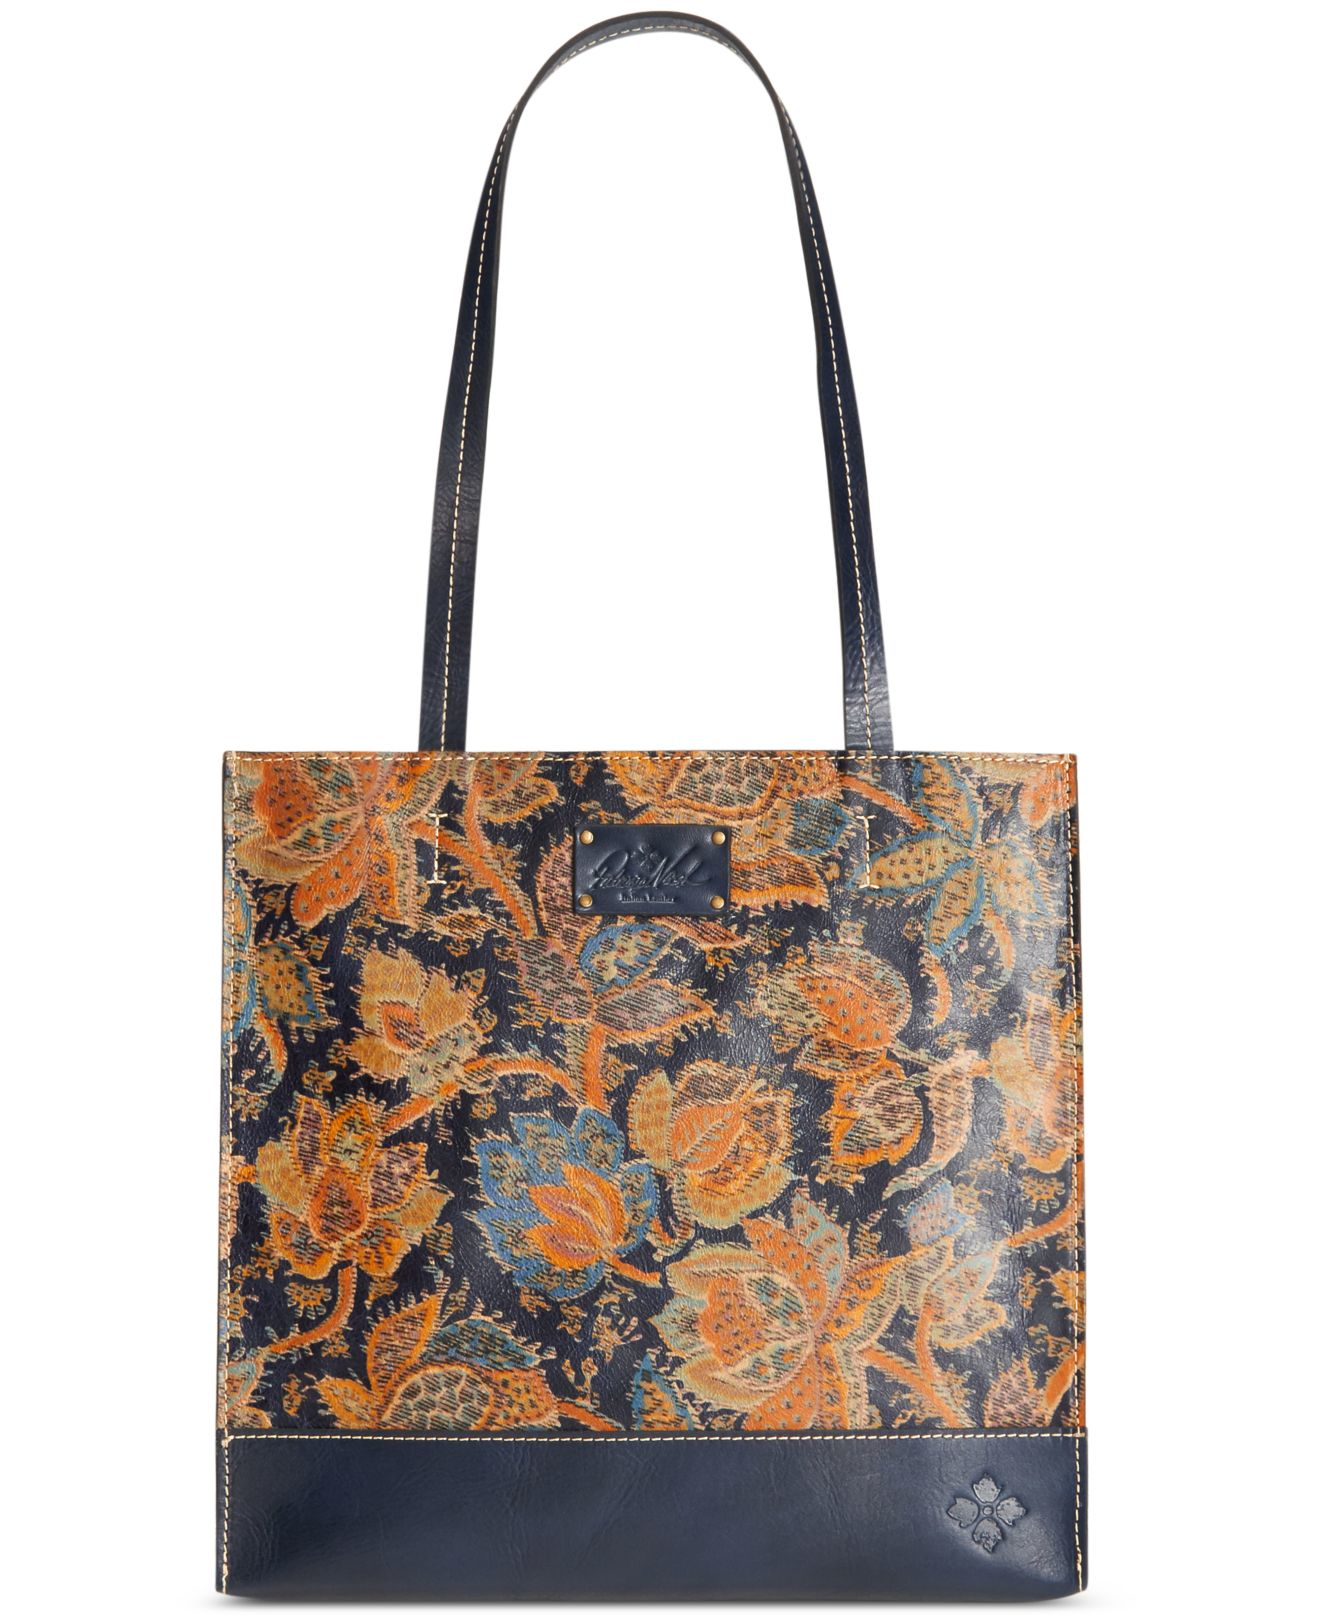 Image result for images patricia nash toscano tote vintage needlepoint